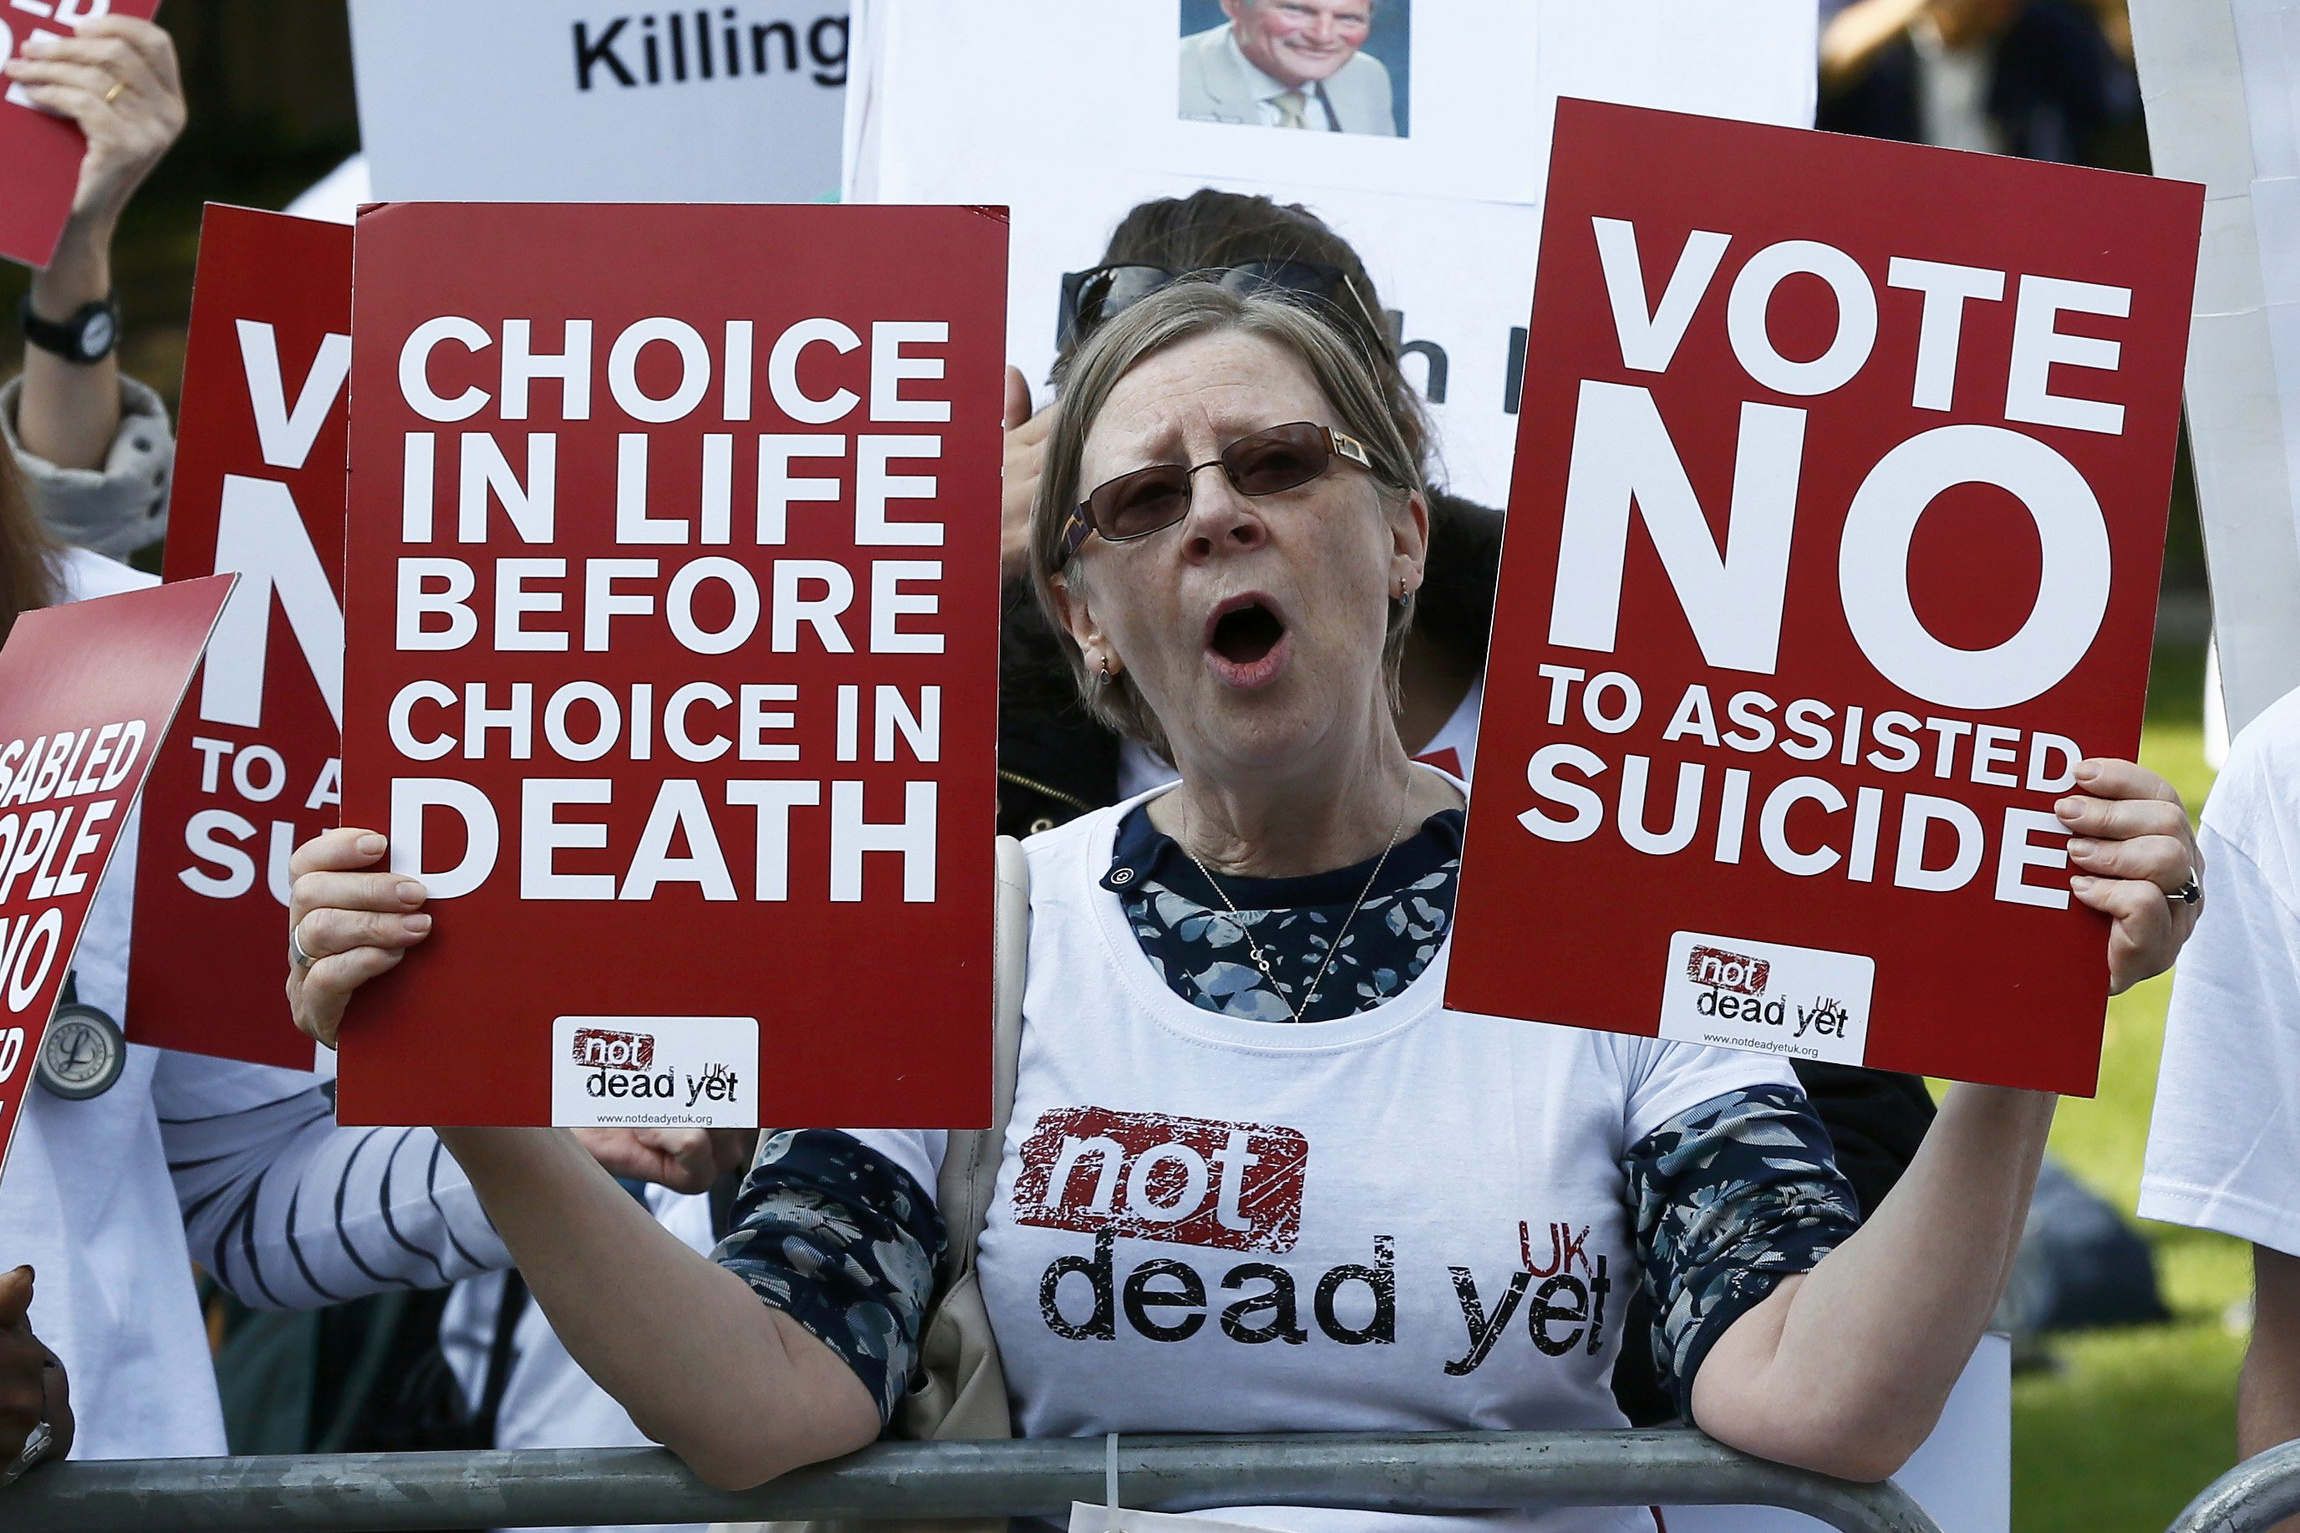 Royal College of Physicians drops opposition to assisted suicide